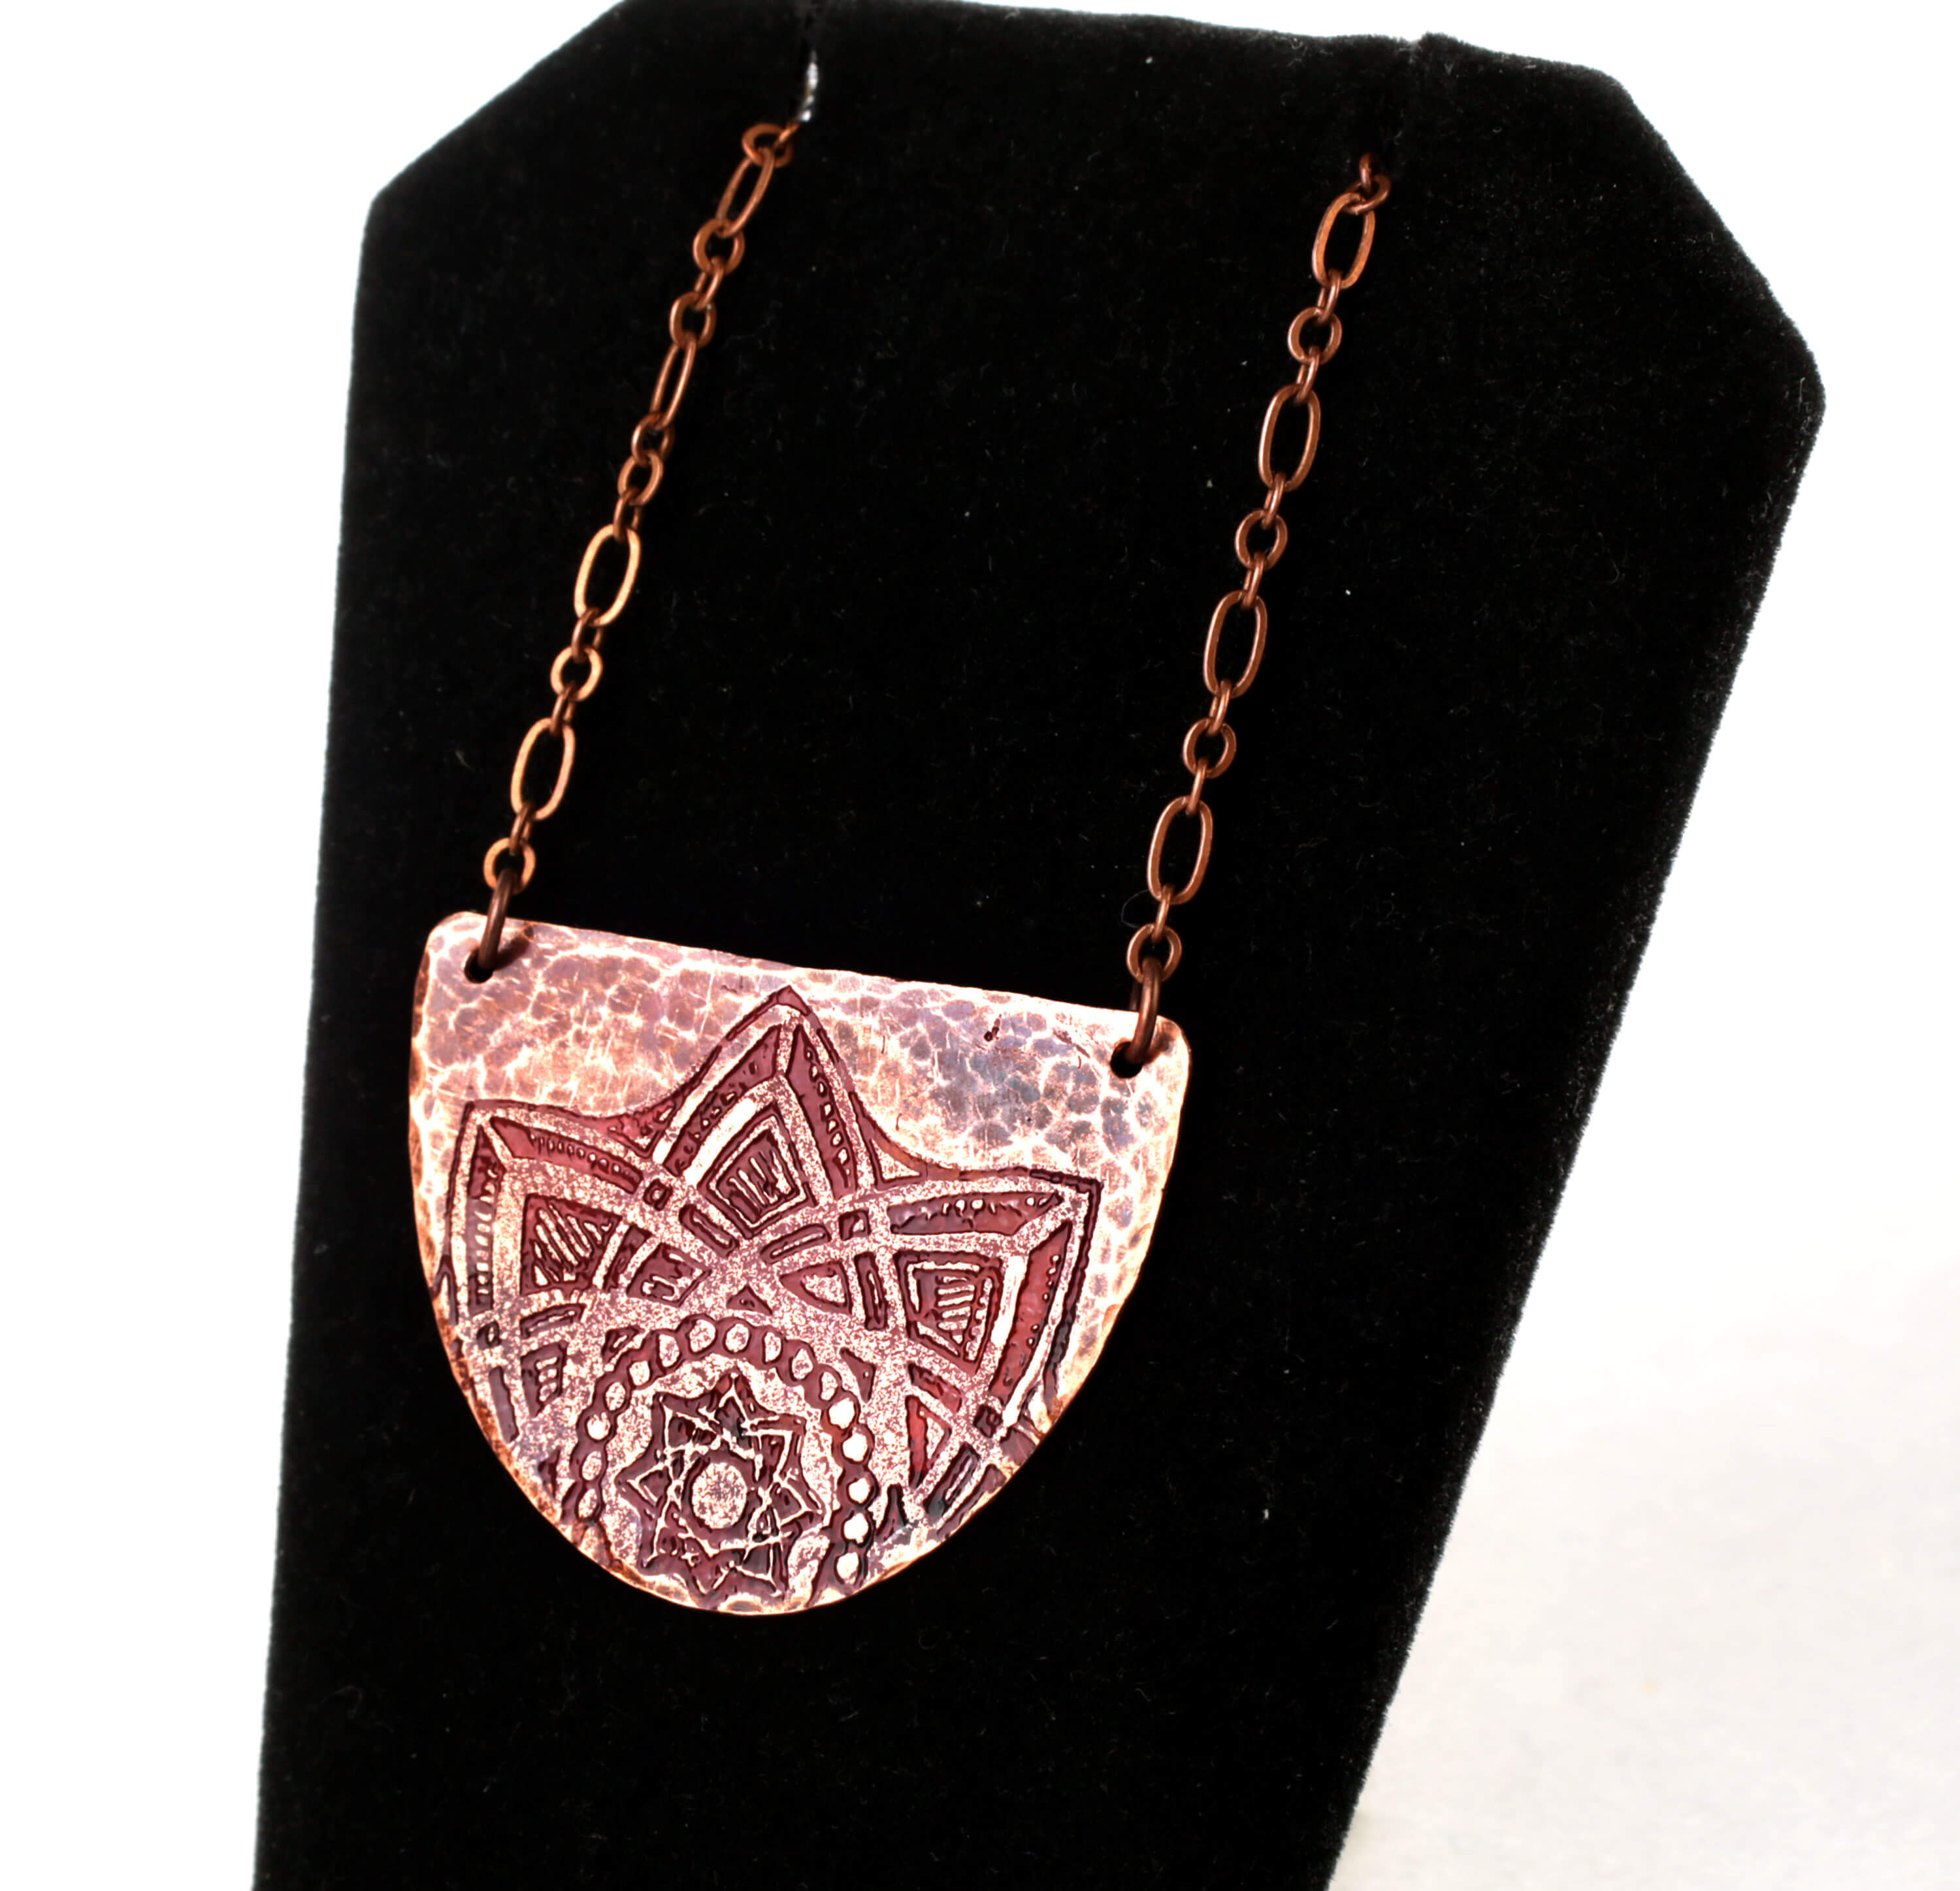 Reclaimed copper pendant by Trash to Treasure